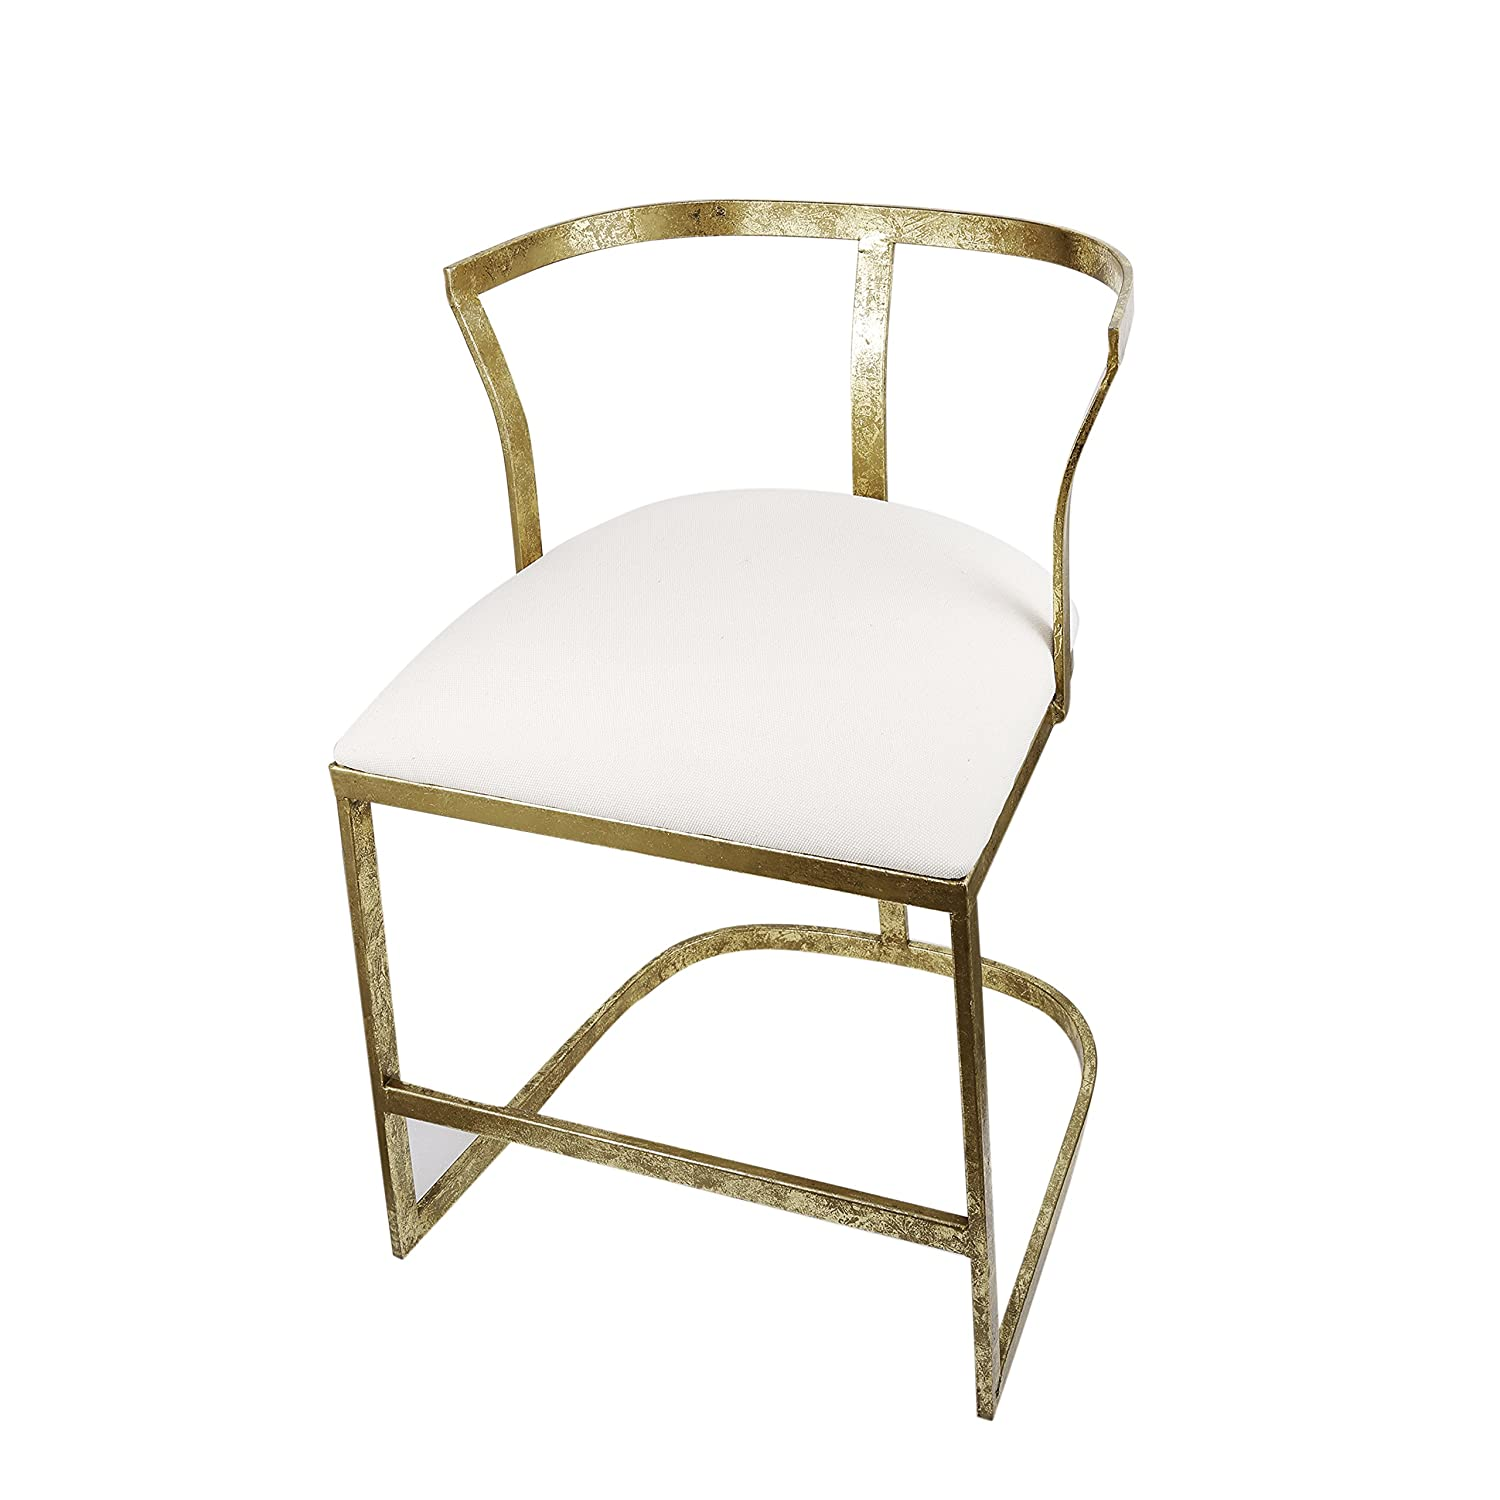 Prime Ab Home Gold Metal Accent Chair Black Andrewgaddart Wooden Chair Designs For Living Room Andrewgaddartcom